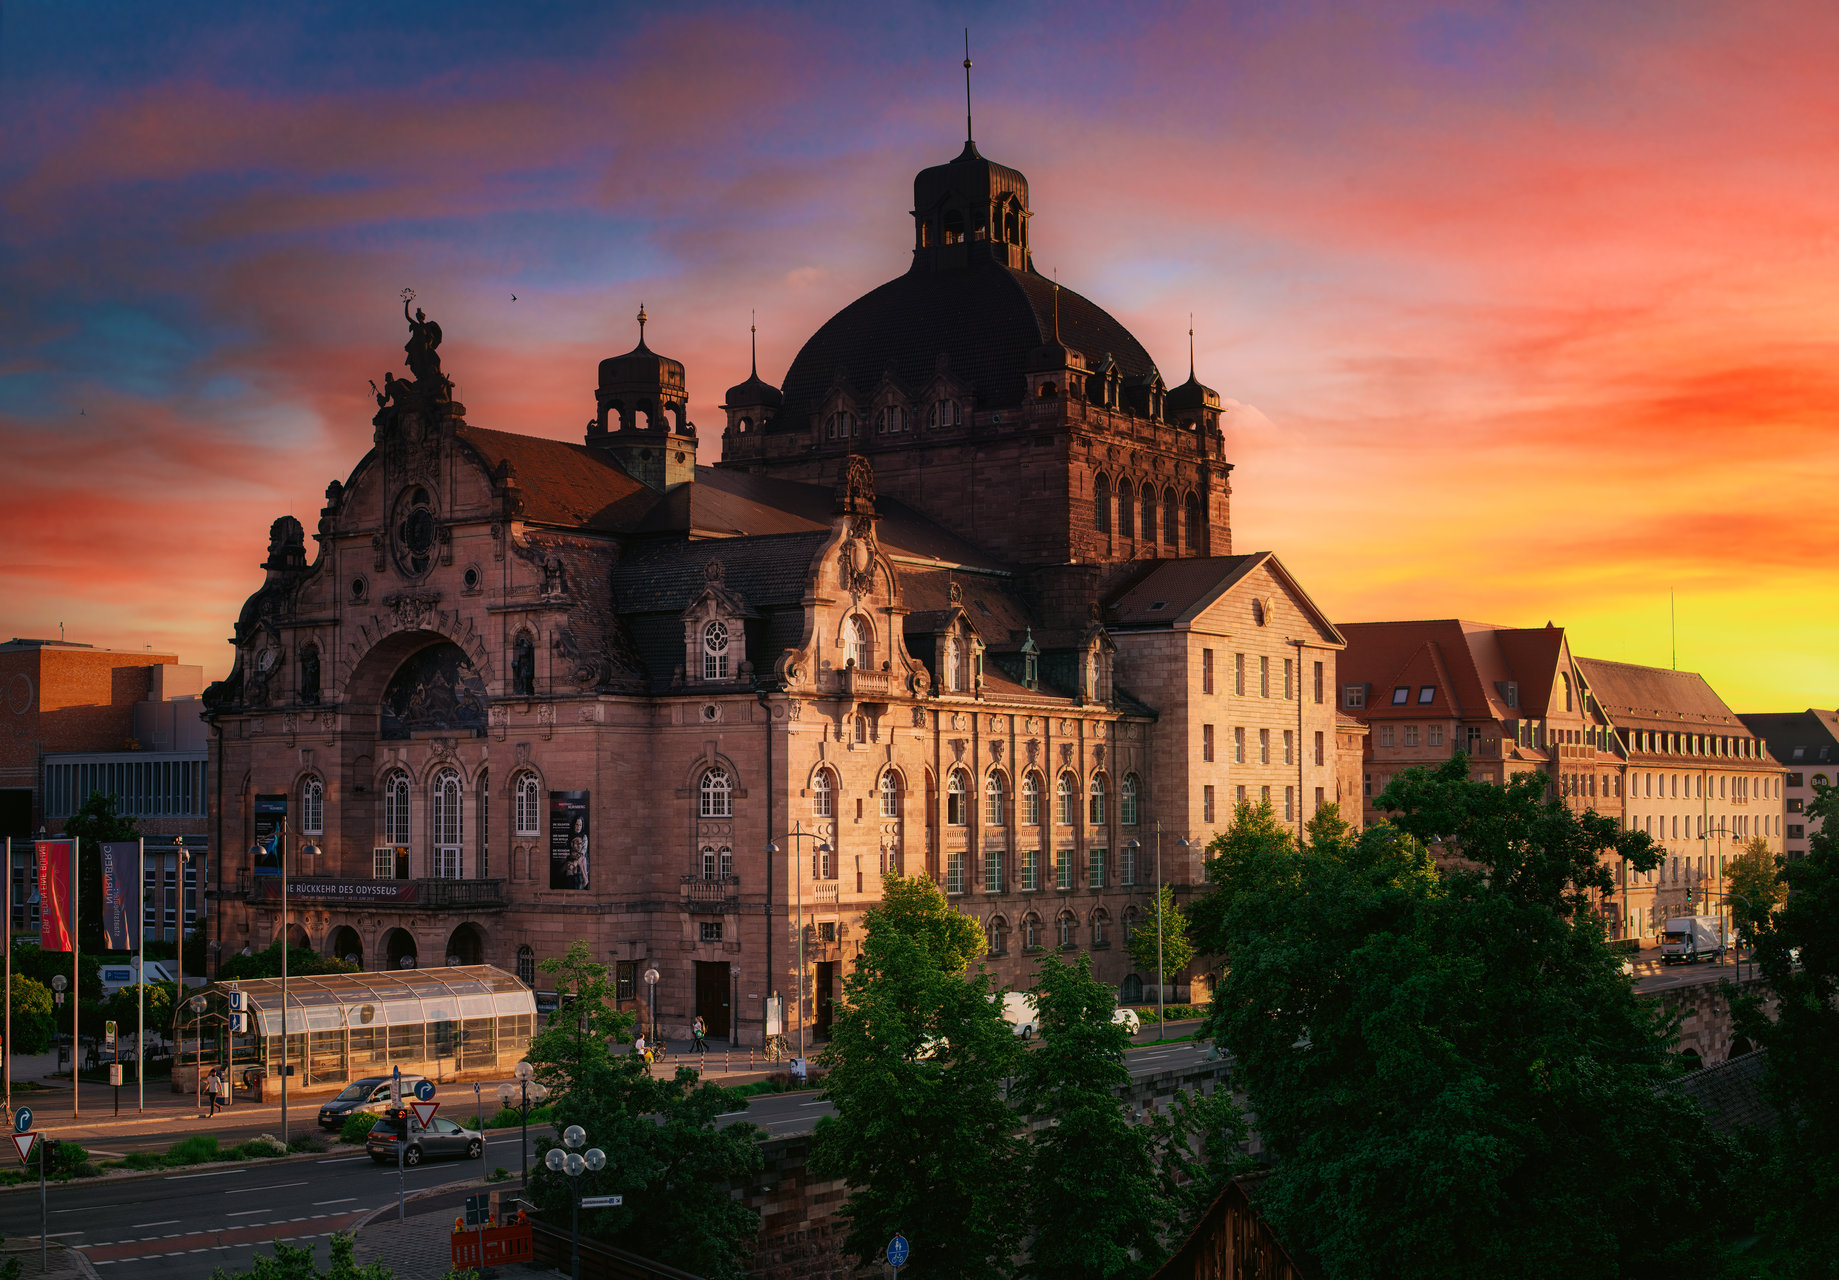 Opern hause- Nurnberg | Author Zavaydin Zavaydinov - Zavaydinov_Photography | PHOTO FORUM